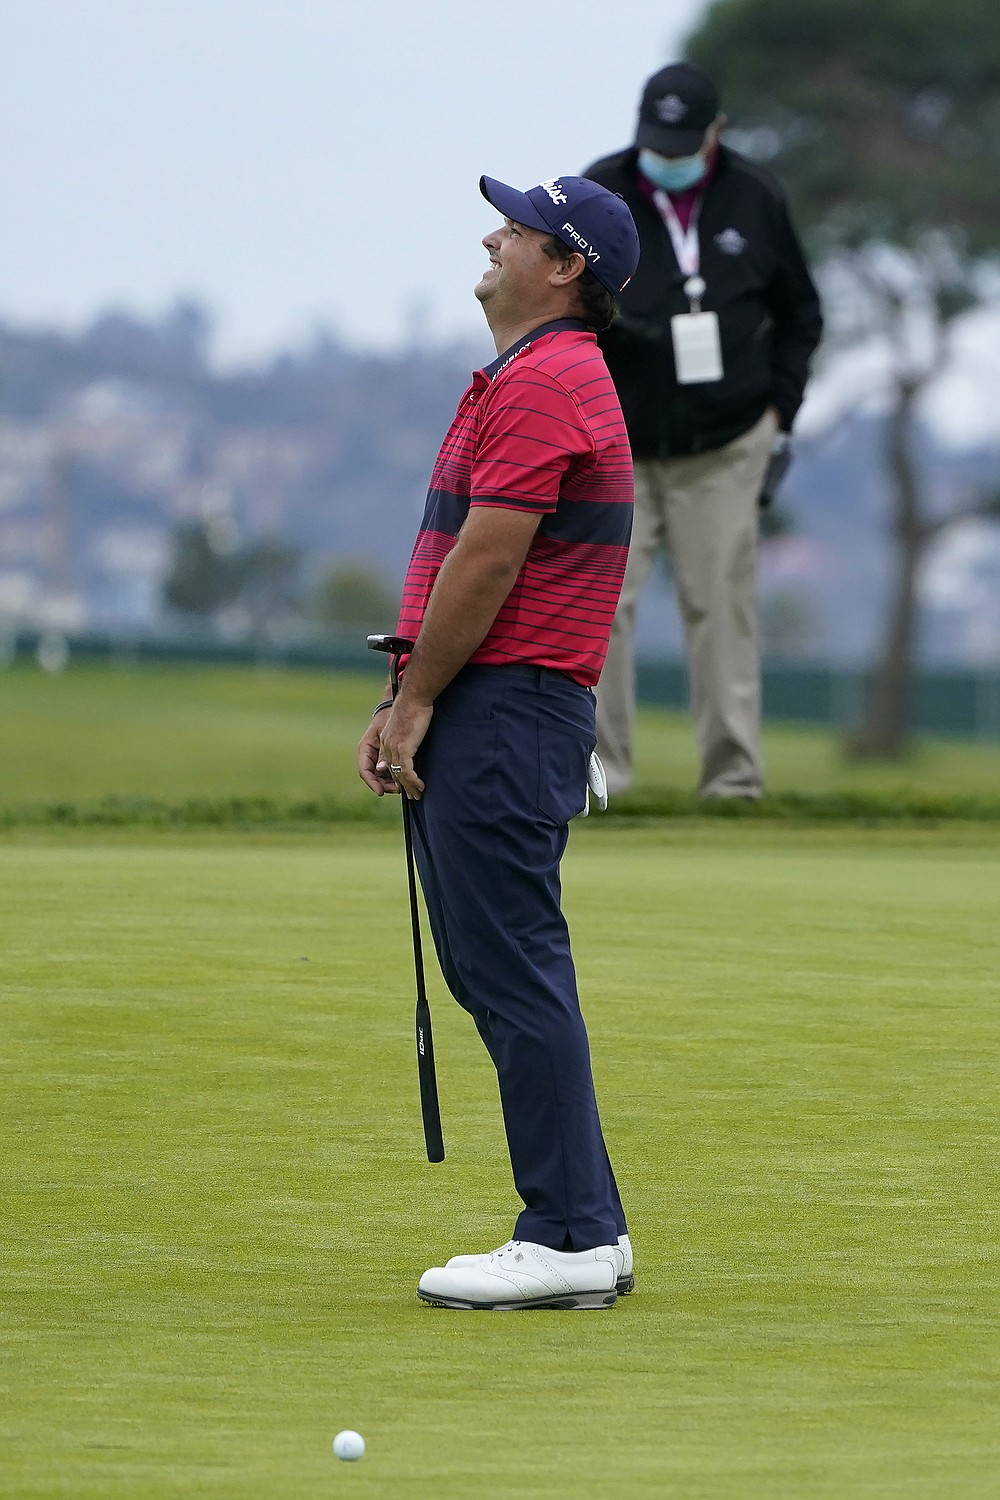 Patrick Reed reacts after missing a putt on the 16th hole on the South Course during the final round of the Farmers Insurance Open golf tournament at Torrey Pines, Sunday, Jan. 31, 2021, in San Diego. (AP Photo/Gregory Bull)